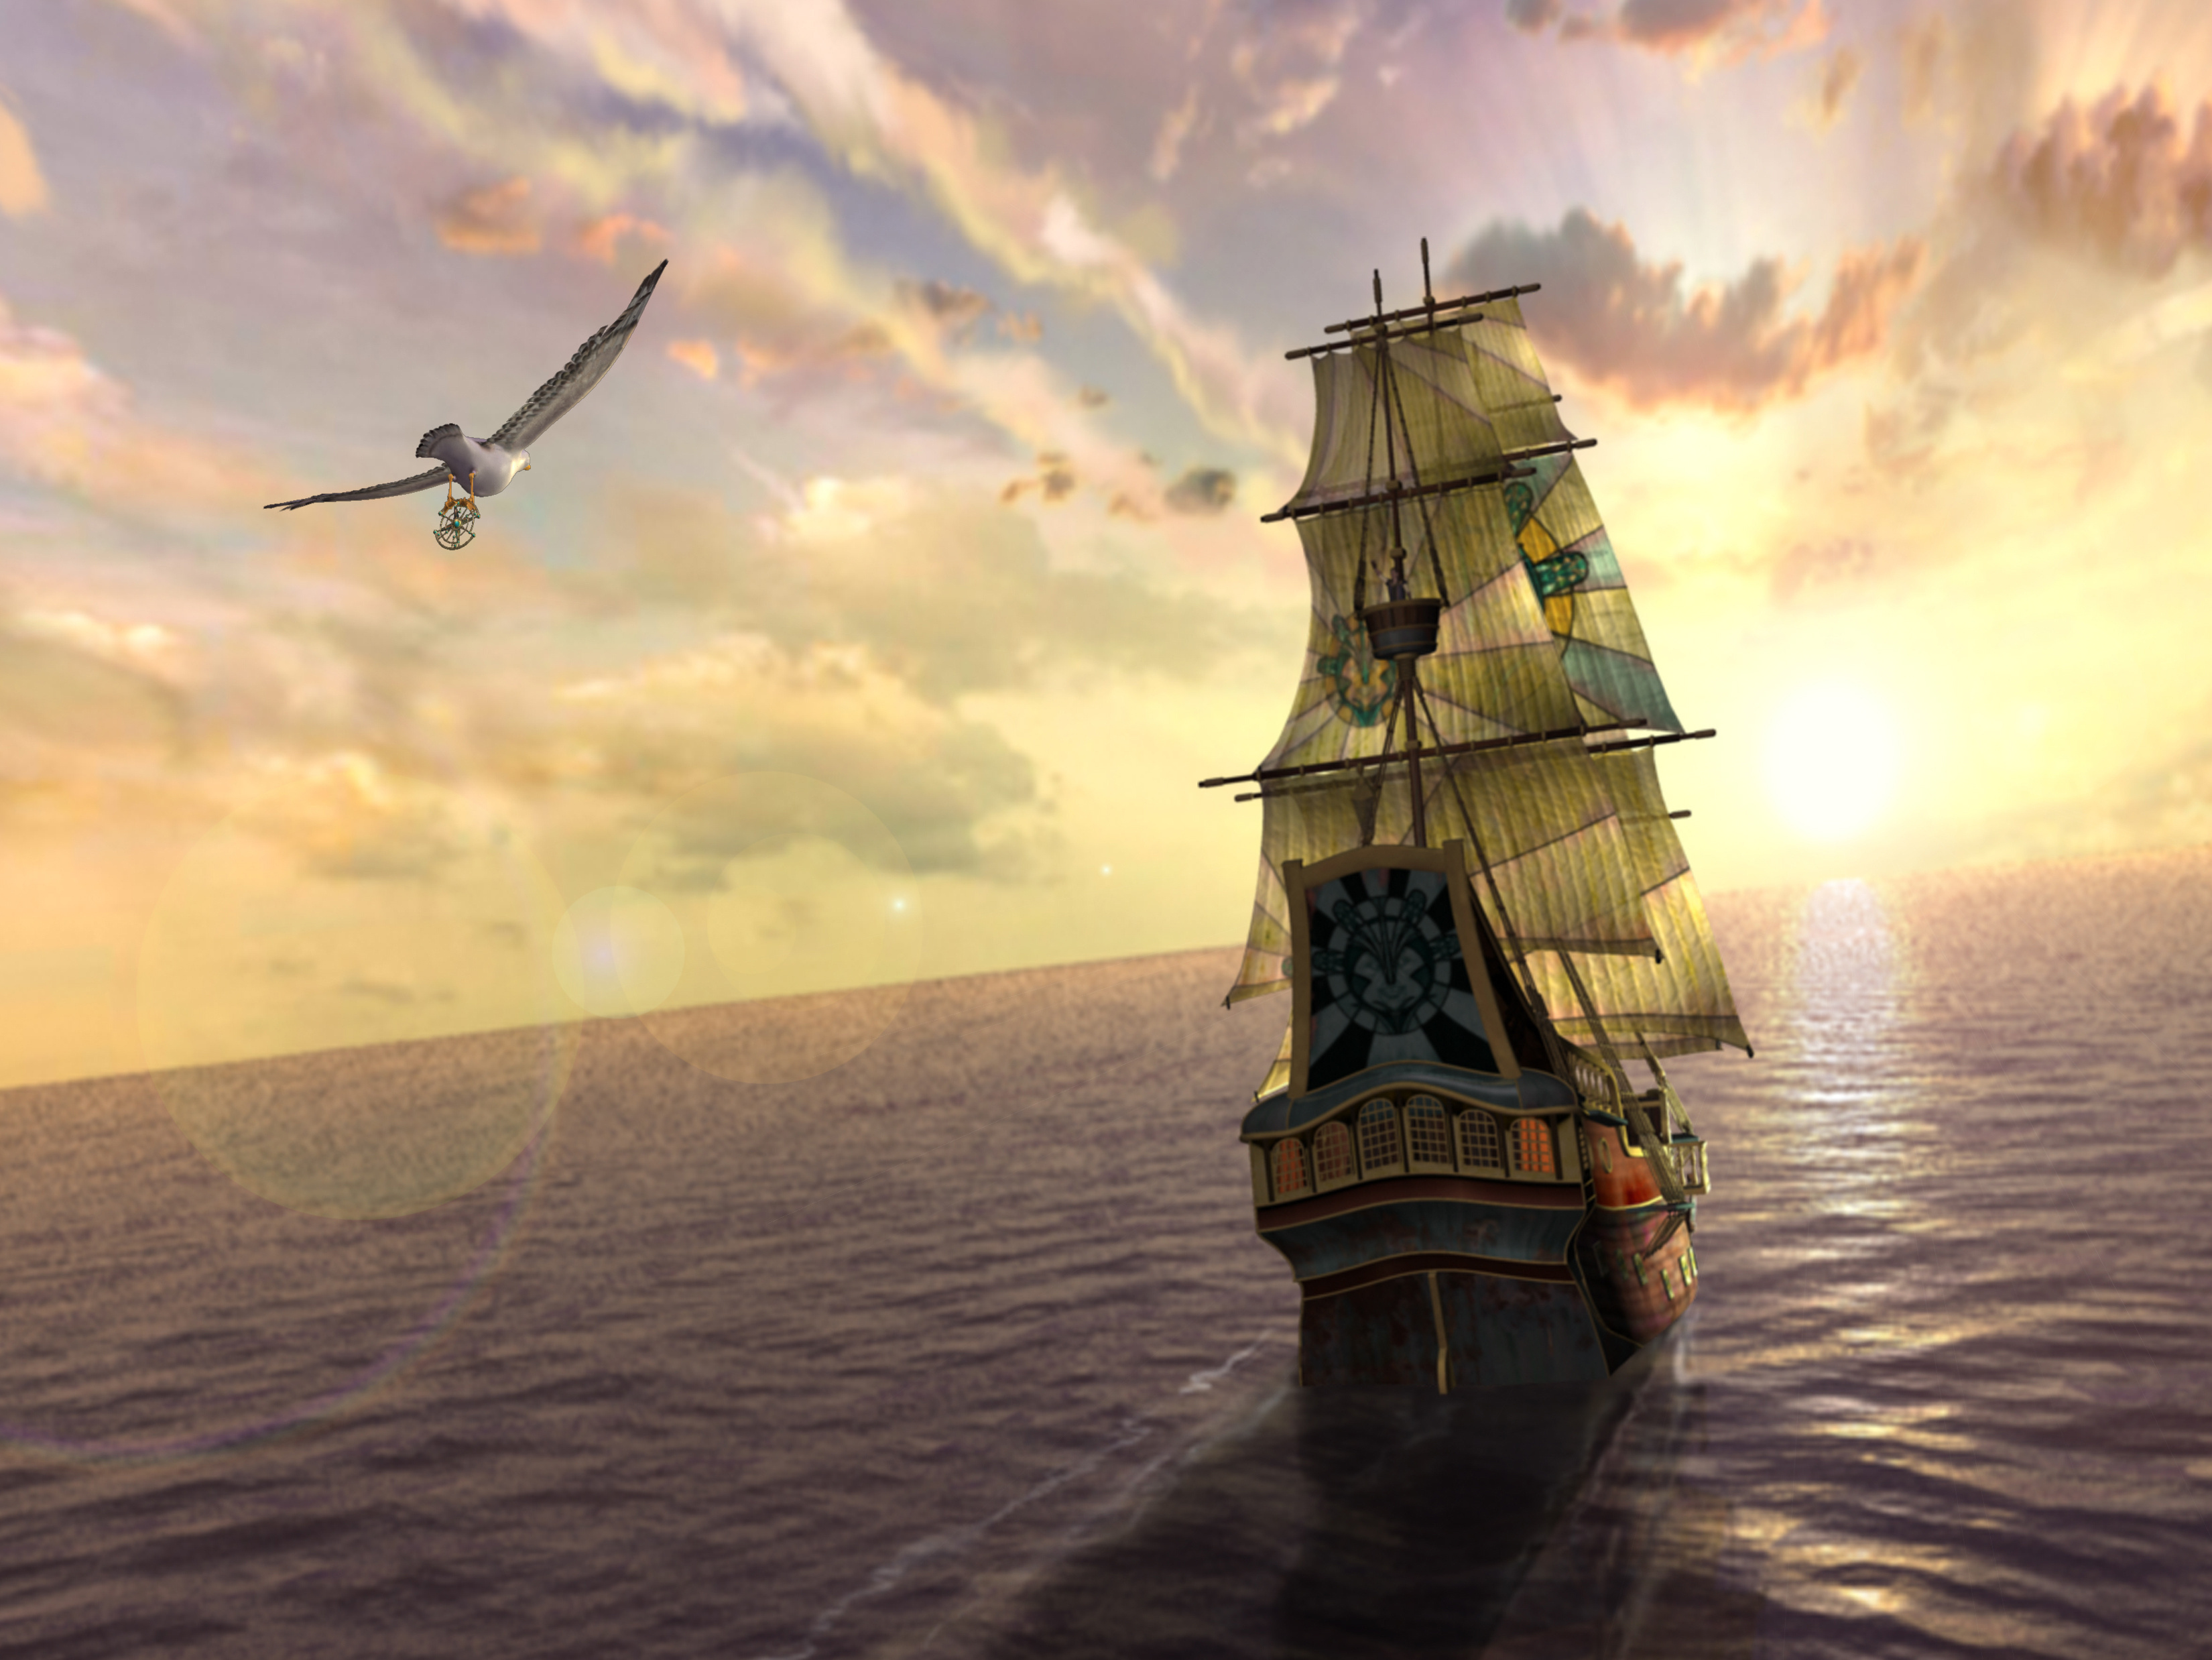 Ship Wallpaper Images in HD Available Here For Download 3300x2476